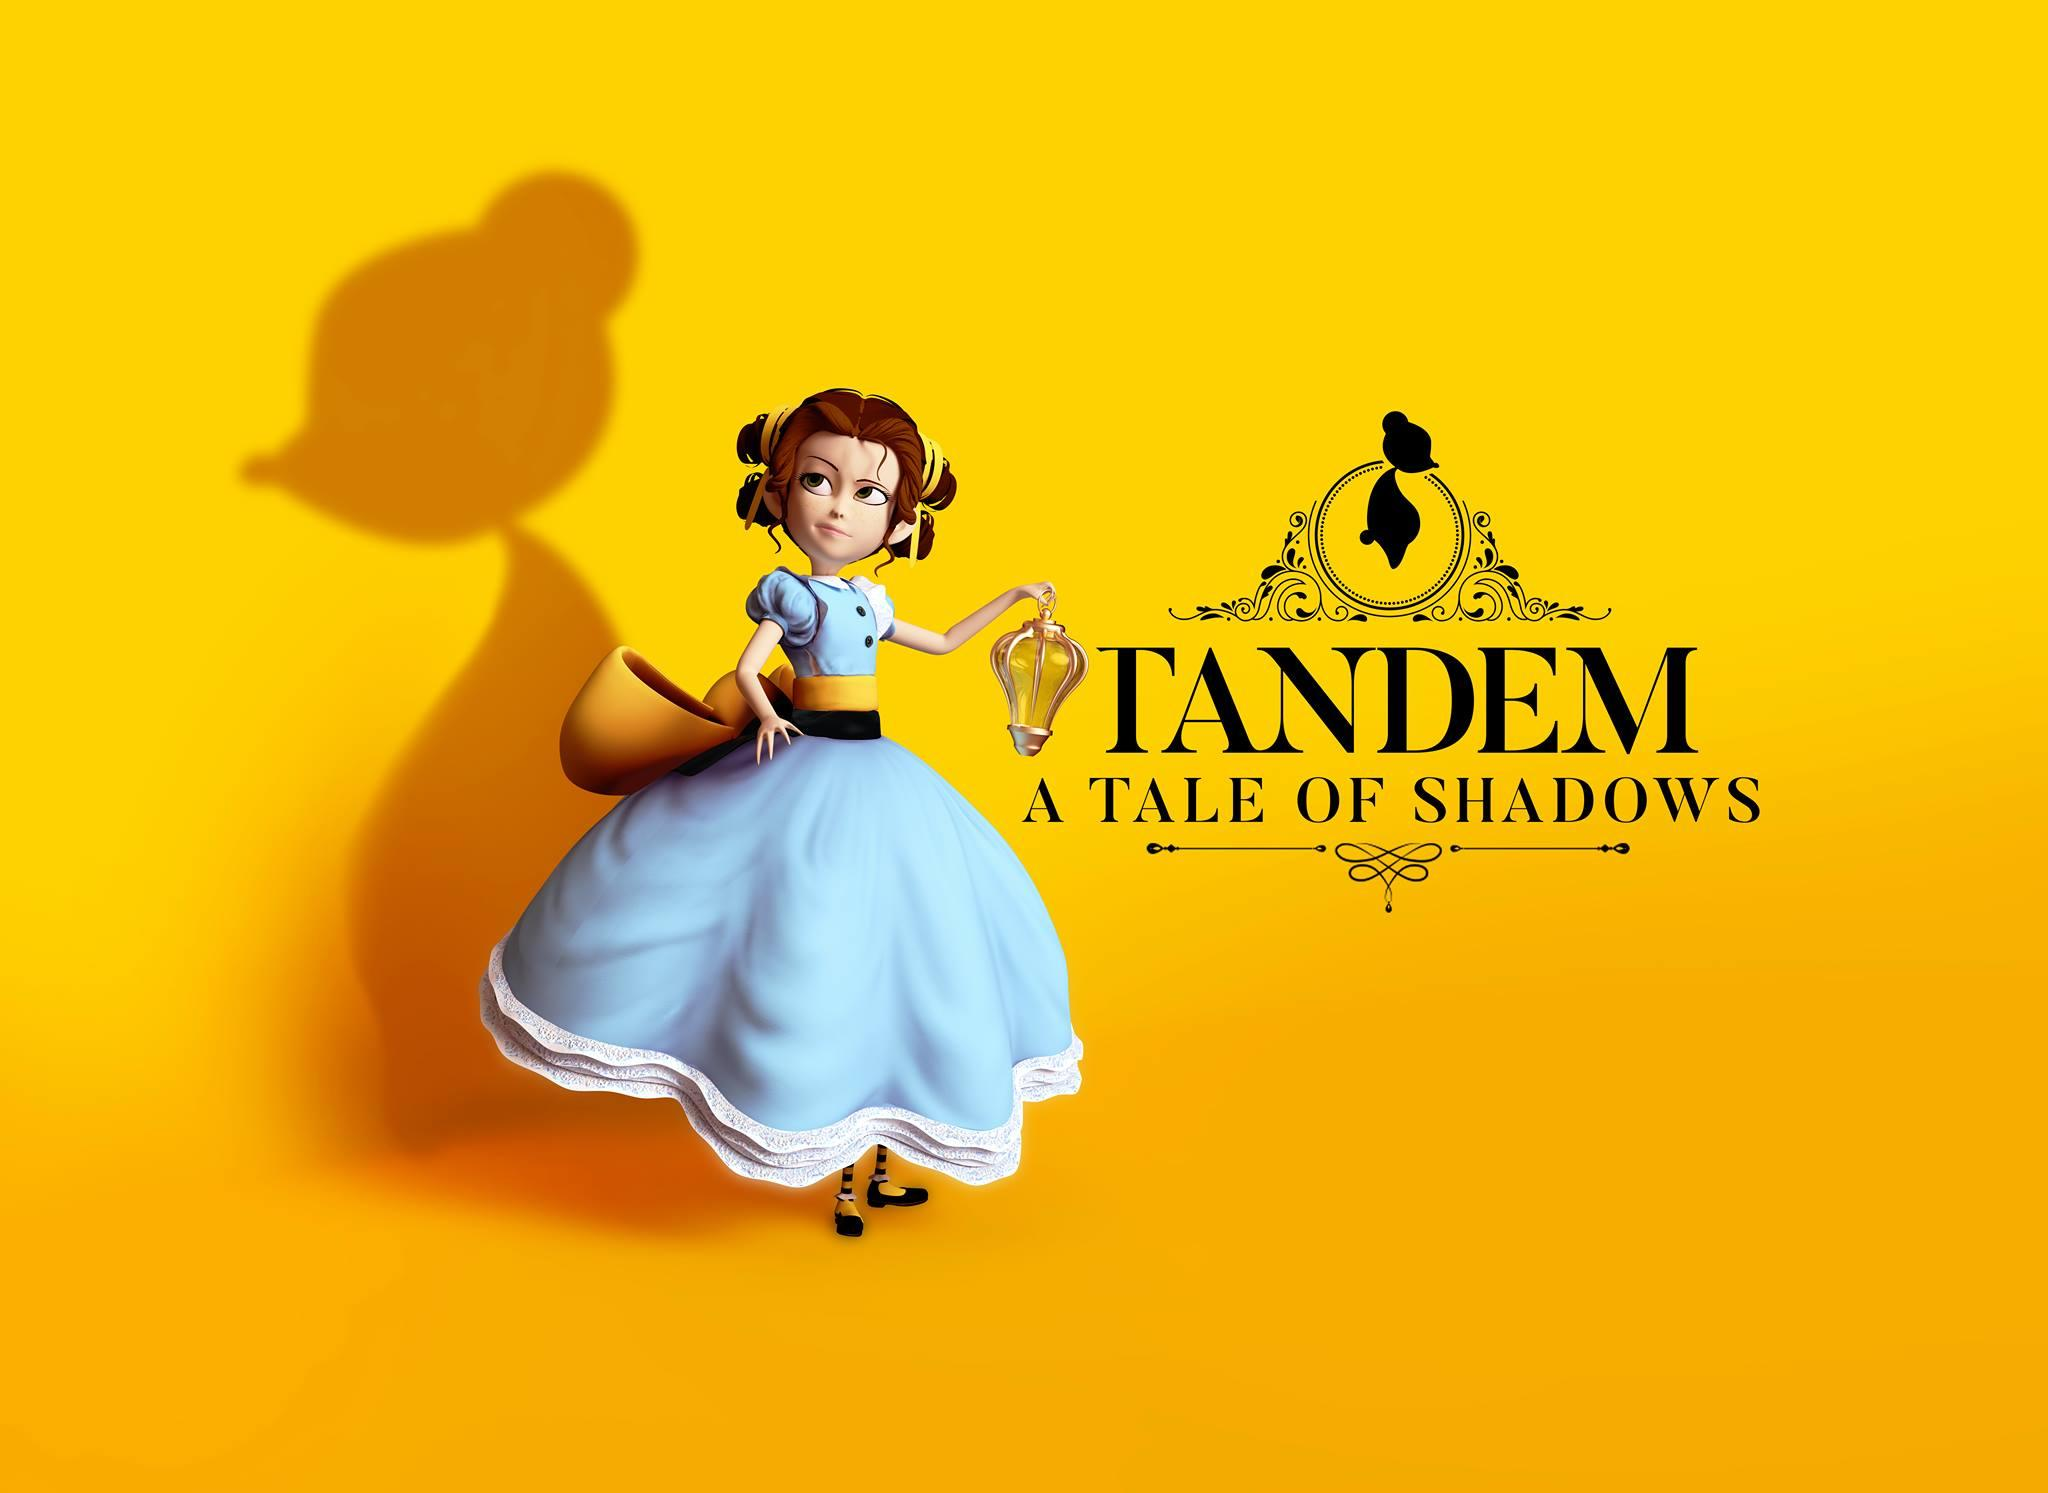 Tandem: A Tale of Shadows trailer